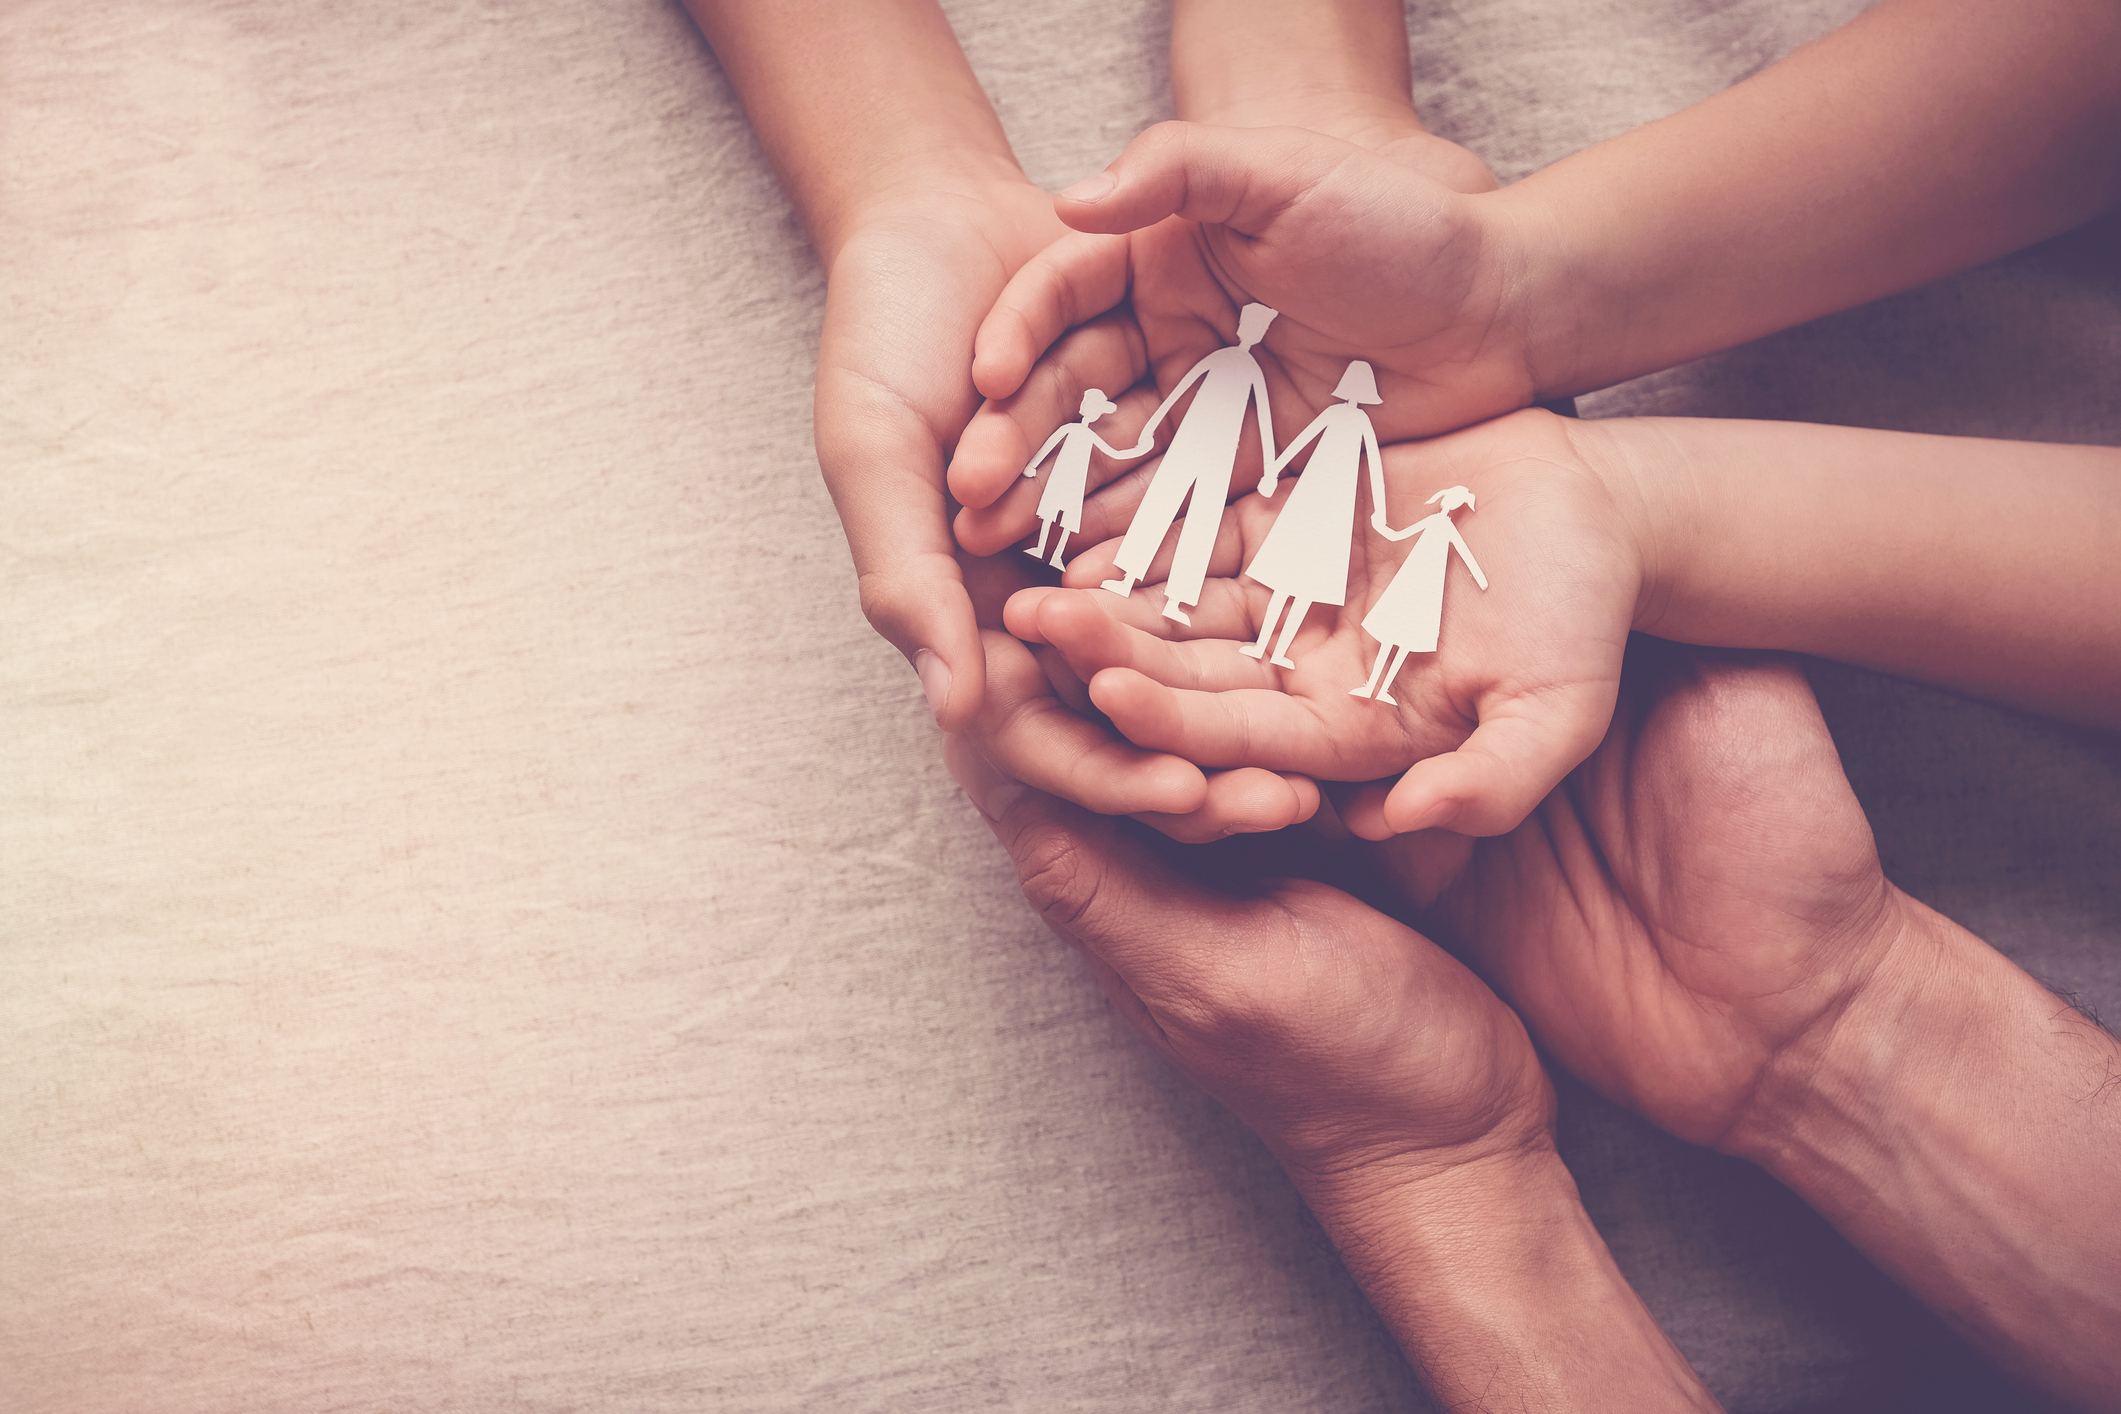 Foster care concept image, hands holding cutout of a family unit. Image credit: iStock